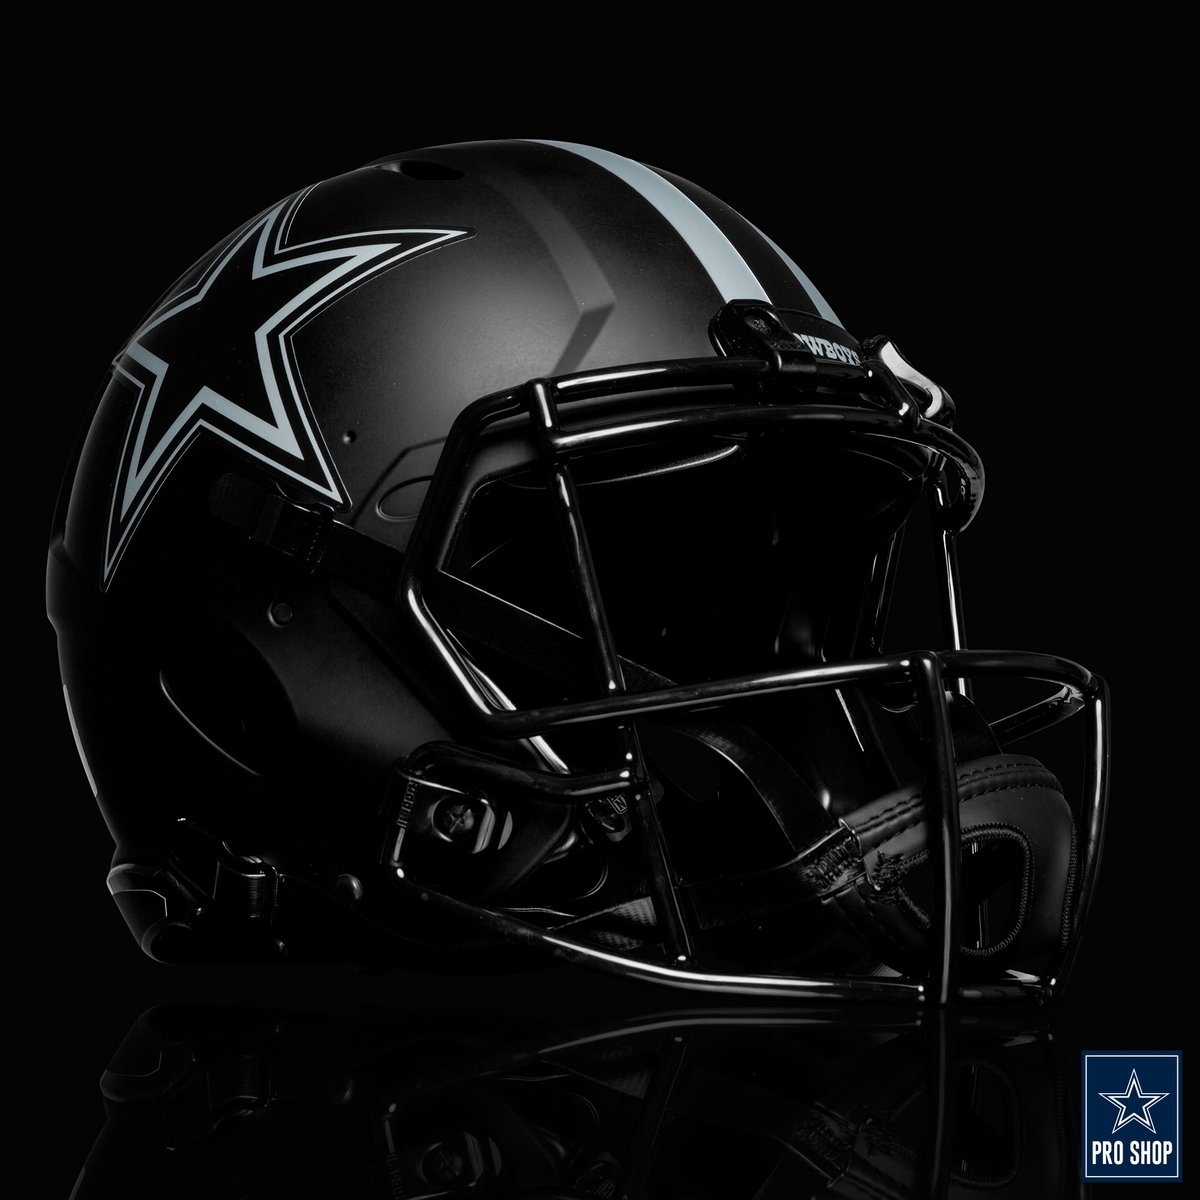 ⚠️ LOW STOCK ALERT ⚠️  The mini matte black helmet? SOLD OUT! Less than 15 full size replicas & less than 5 full size authentic versions are left online 👀   Add this one-of-a-kind #DallasCowboys helmet to your fan cave, office or next tailgate: https://t.co/yQPM33ivtr https://t.co/NwC9l3y4Xd